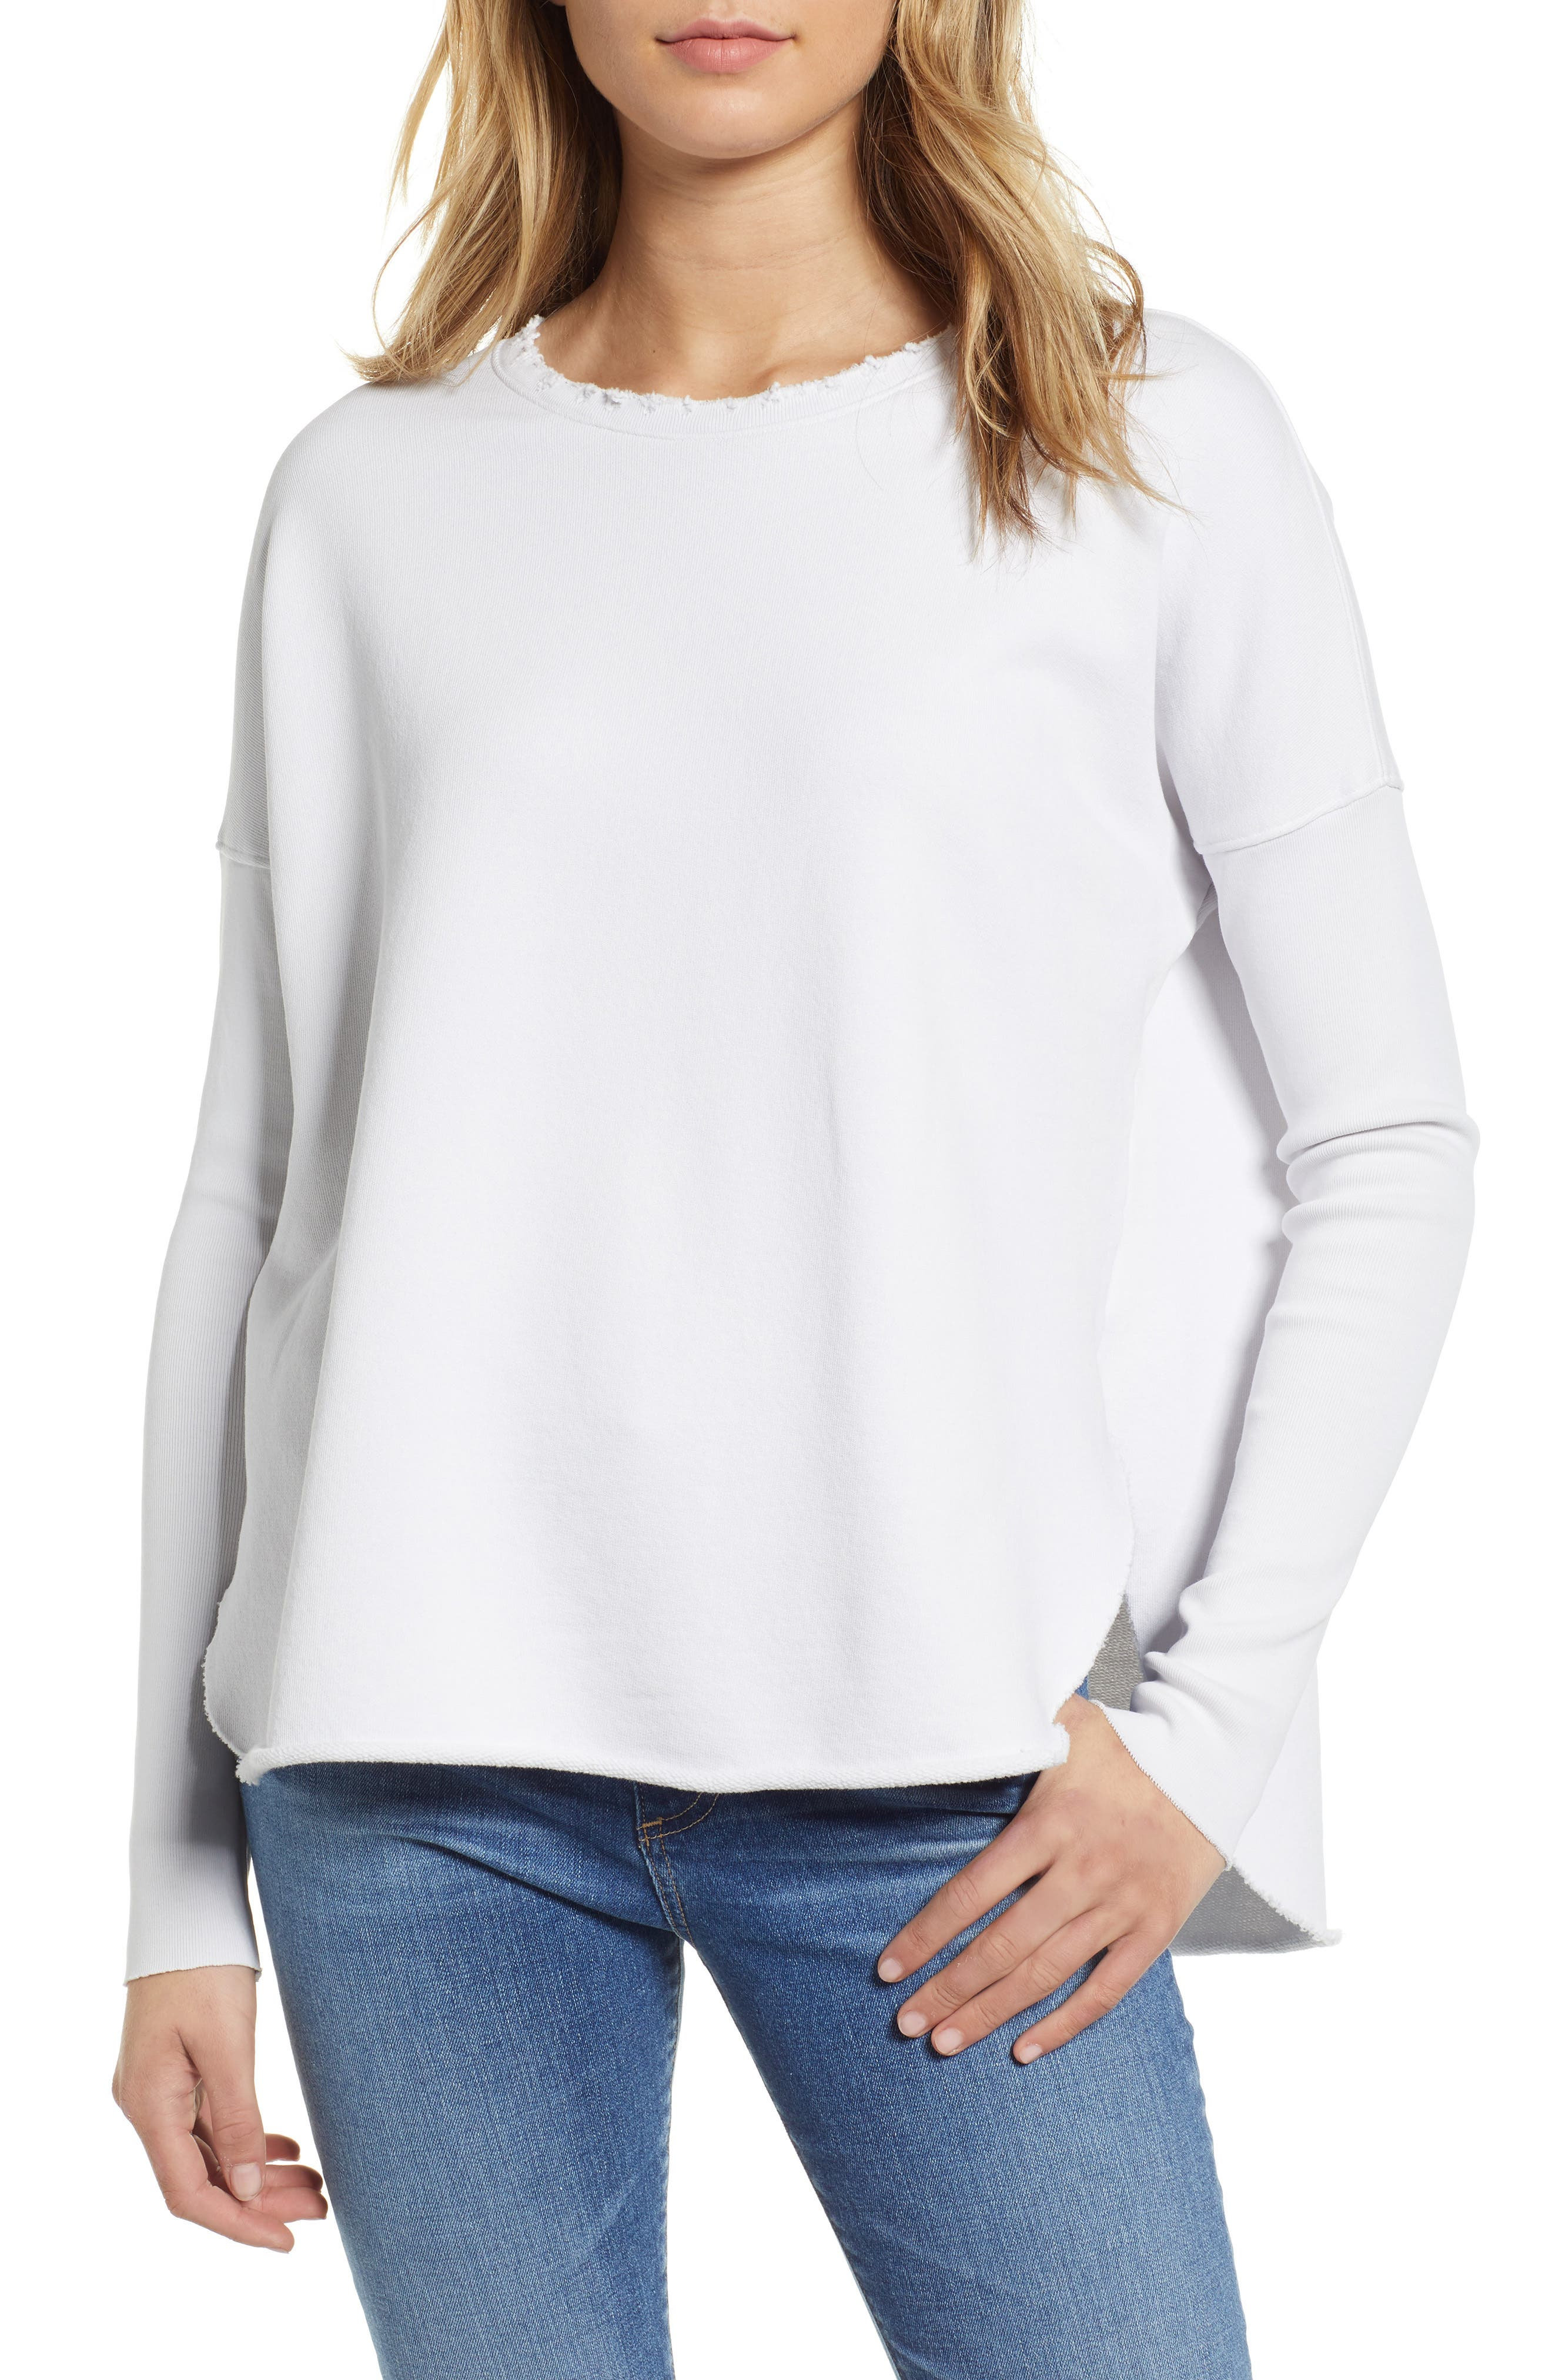 FRANK & EILEEN Tee Lab Relaxed Sweatshirt in Dirty White